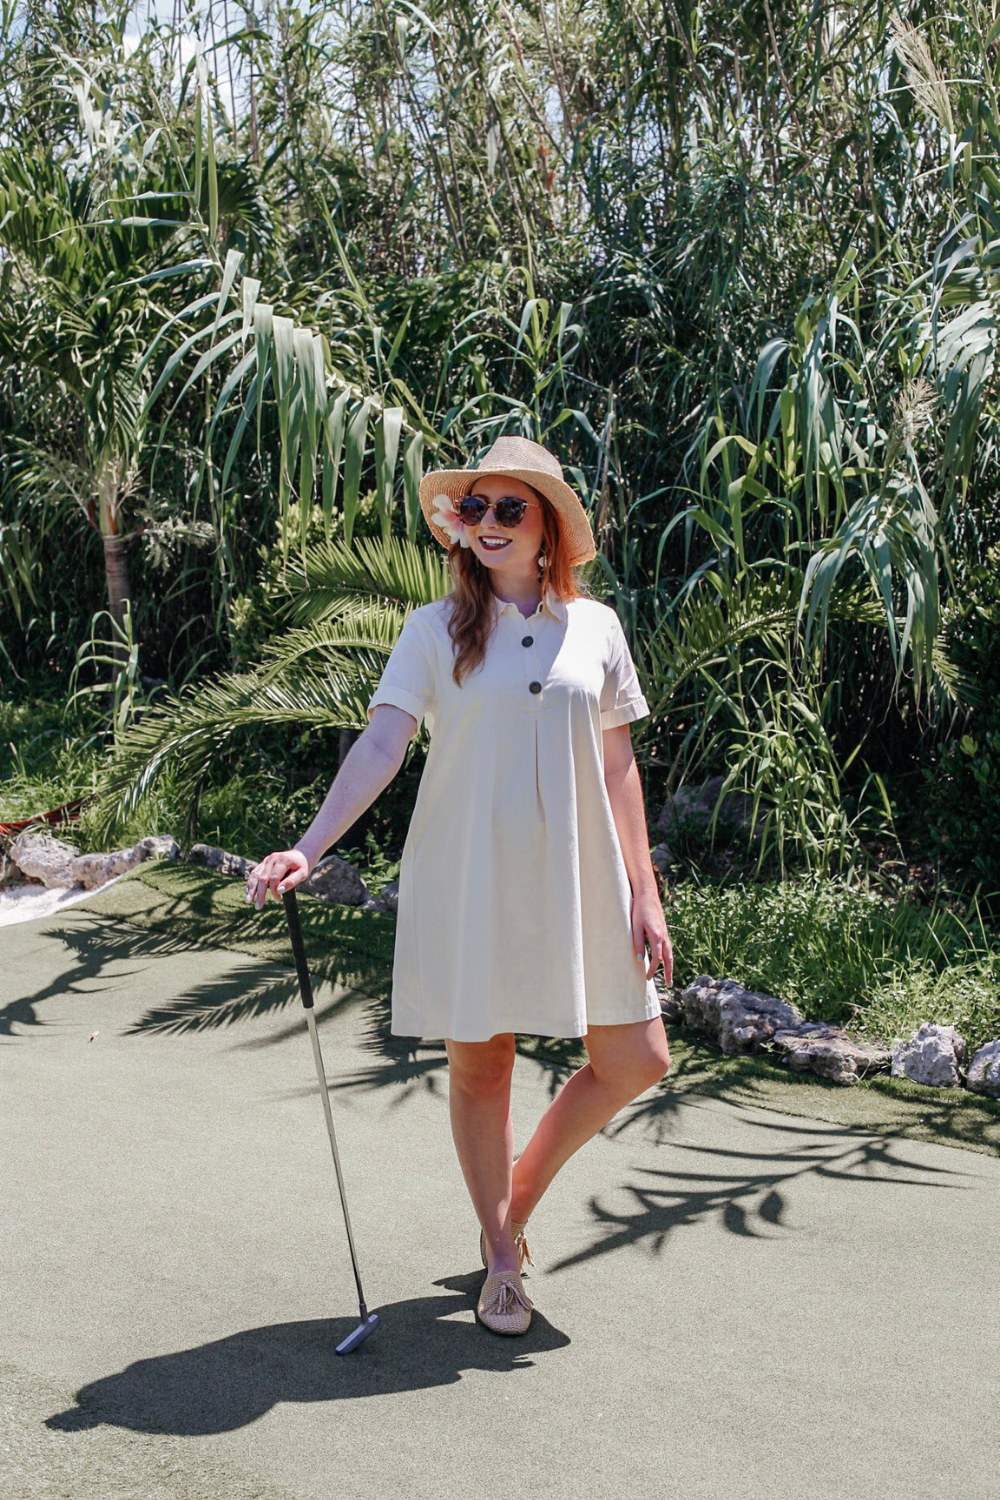 Ultimate Bermuda Travel Guide - Tampa Blogger Amanda Burrows of Affordable by Amanda Shares What to Do and What to Experience in Bermuda